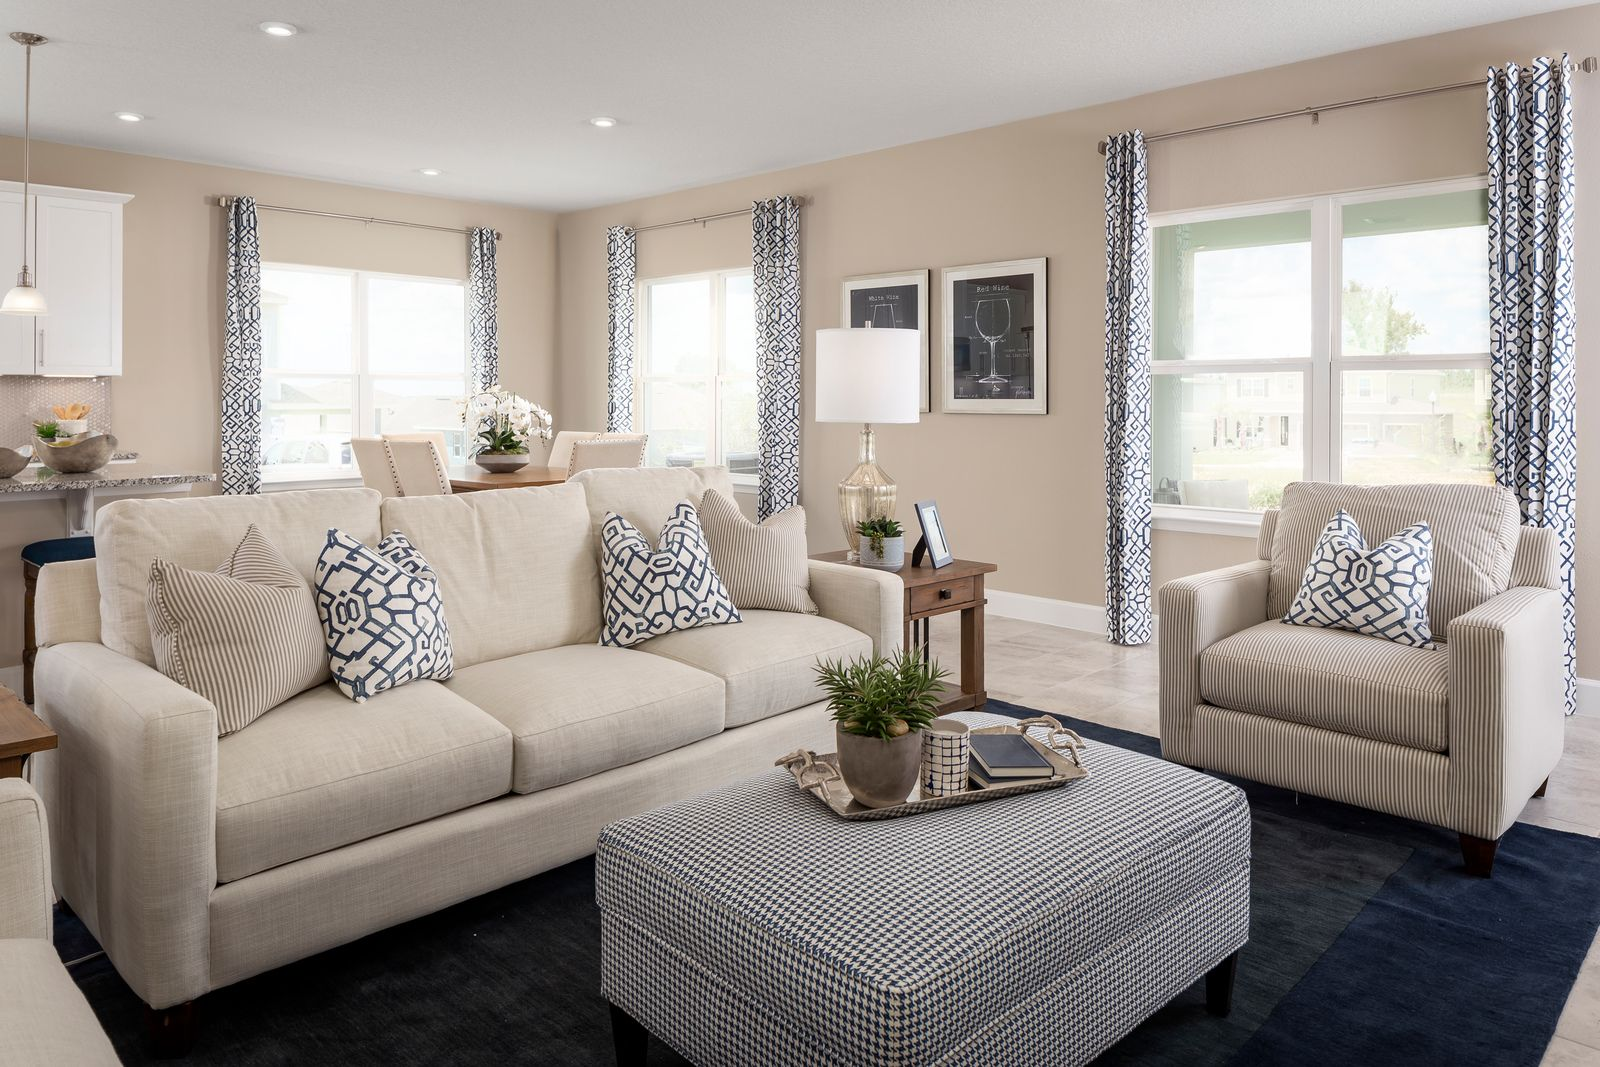 Living Area featured in the Lynn Haven By Ryan Homes in Tampa-St. Petersburg, FL